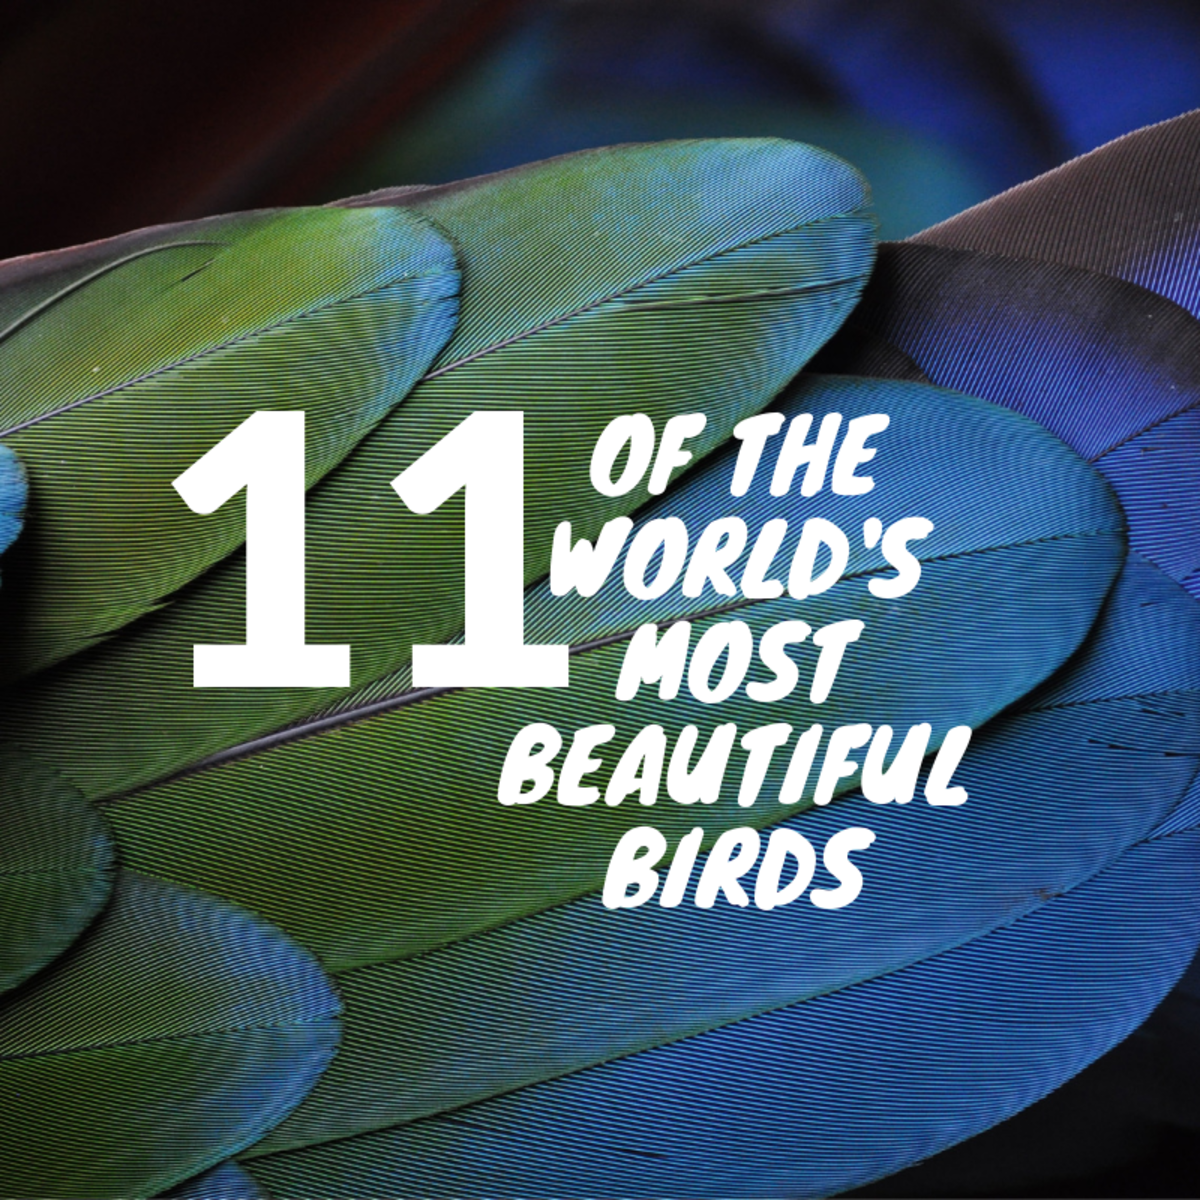 These 11 birds are some of the most visually spectacular in the world.